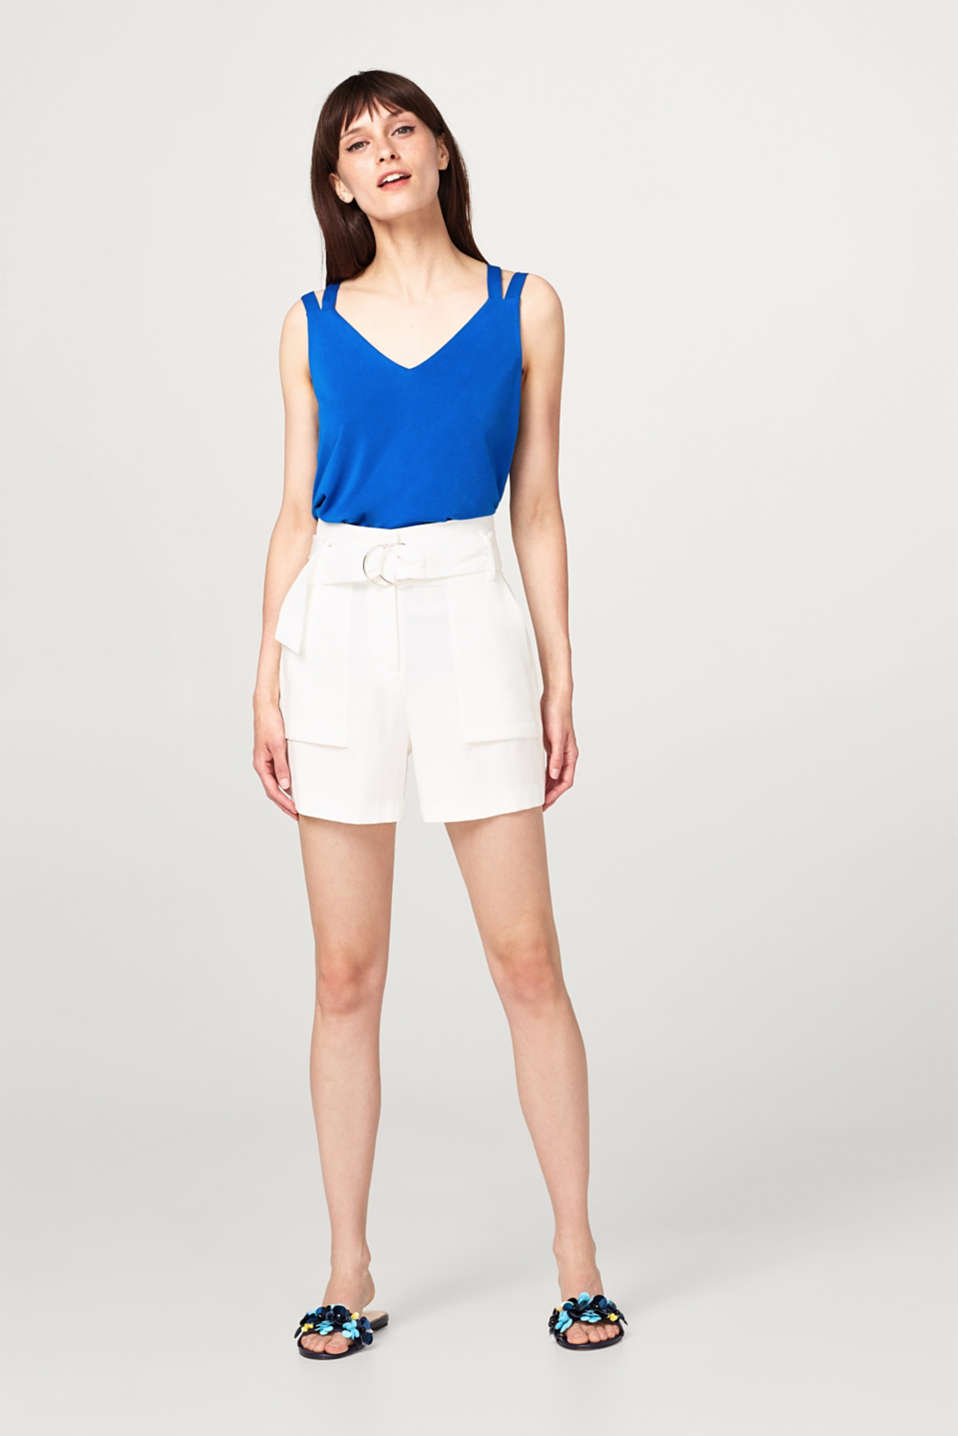 Stretch jersey top with crossed-over, double-layer straps